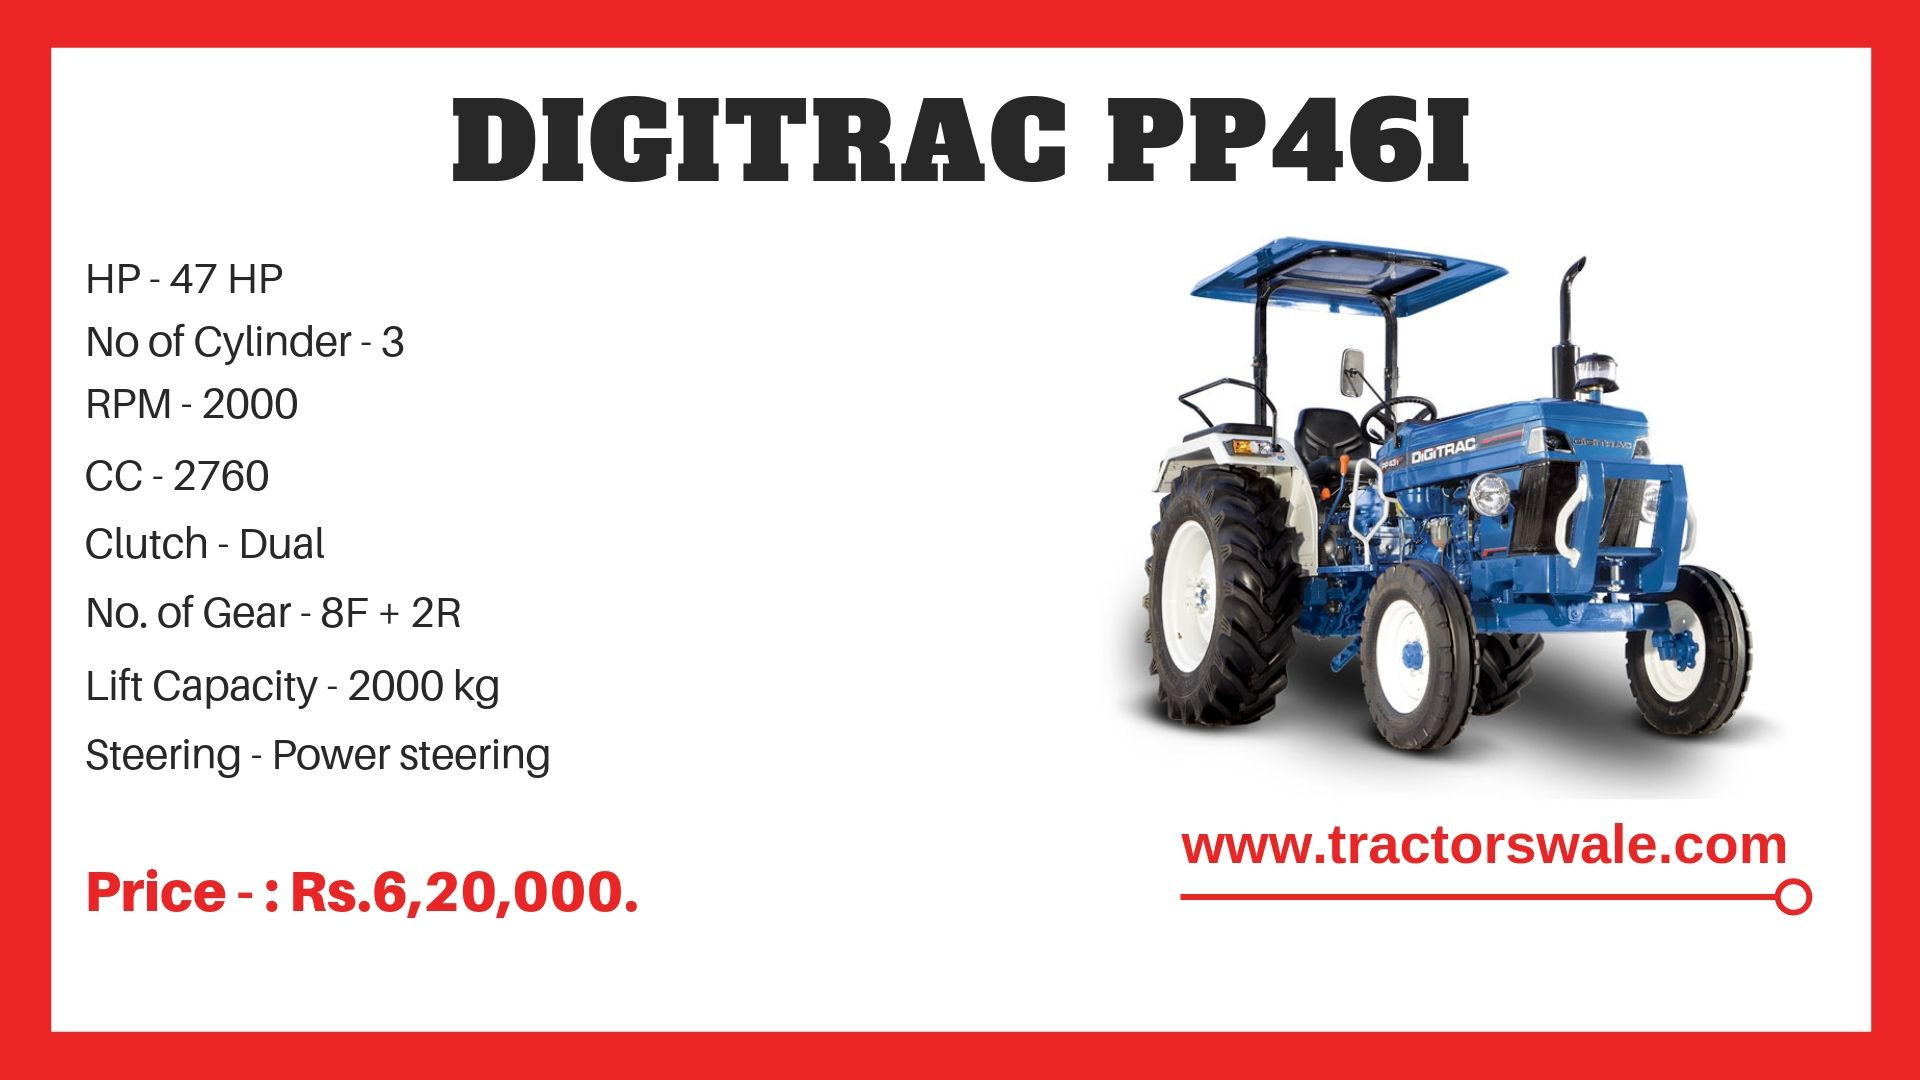 Digitrac PP43i Tractor Specifications